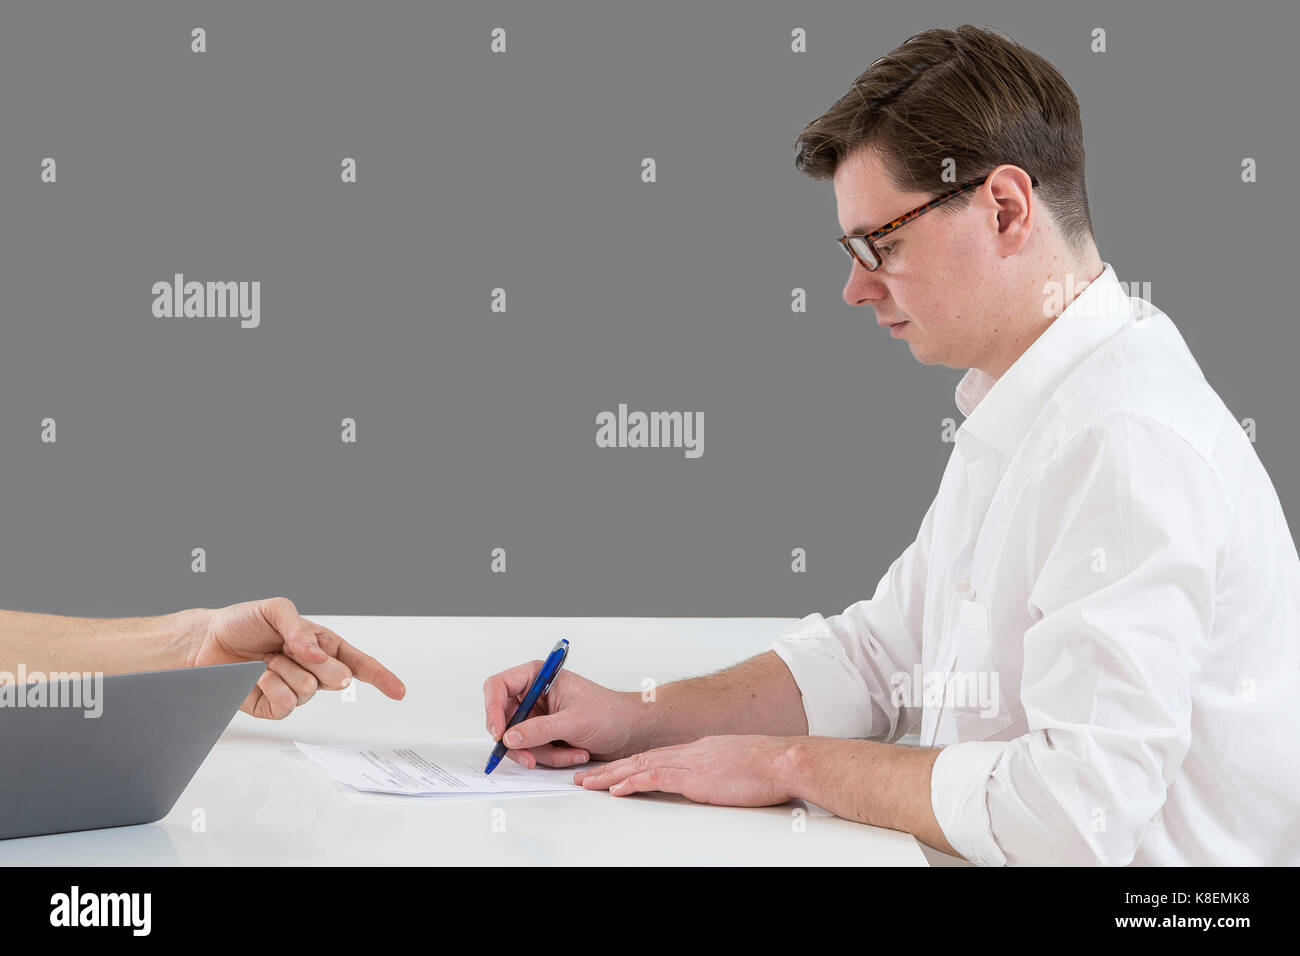 Closeup of male hand pointing where to sign a contract, legal papers or application form. - Stock Image